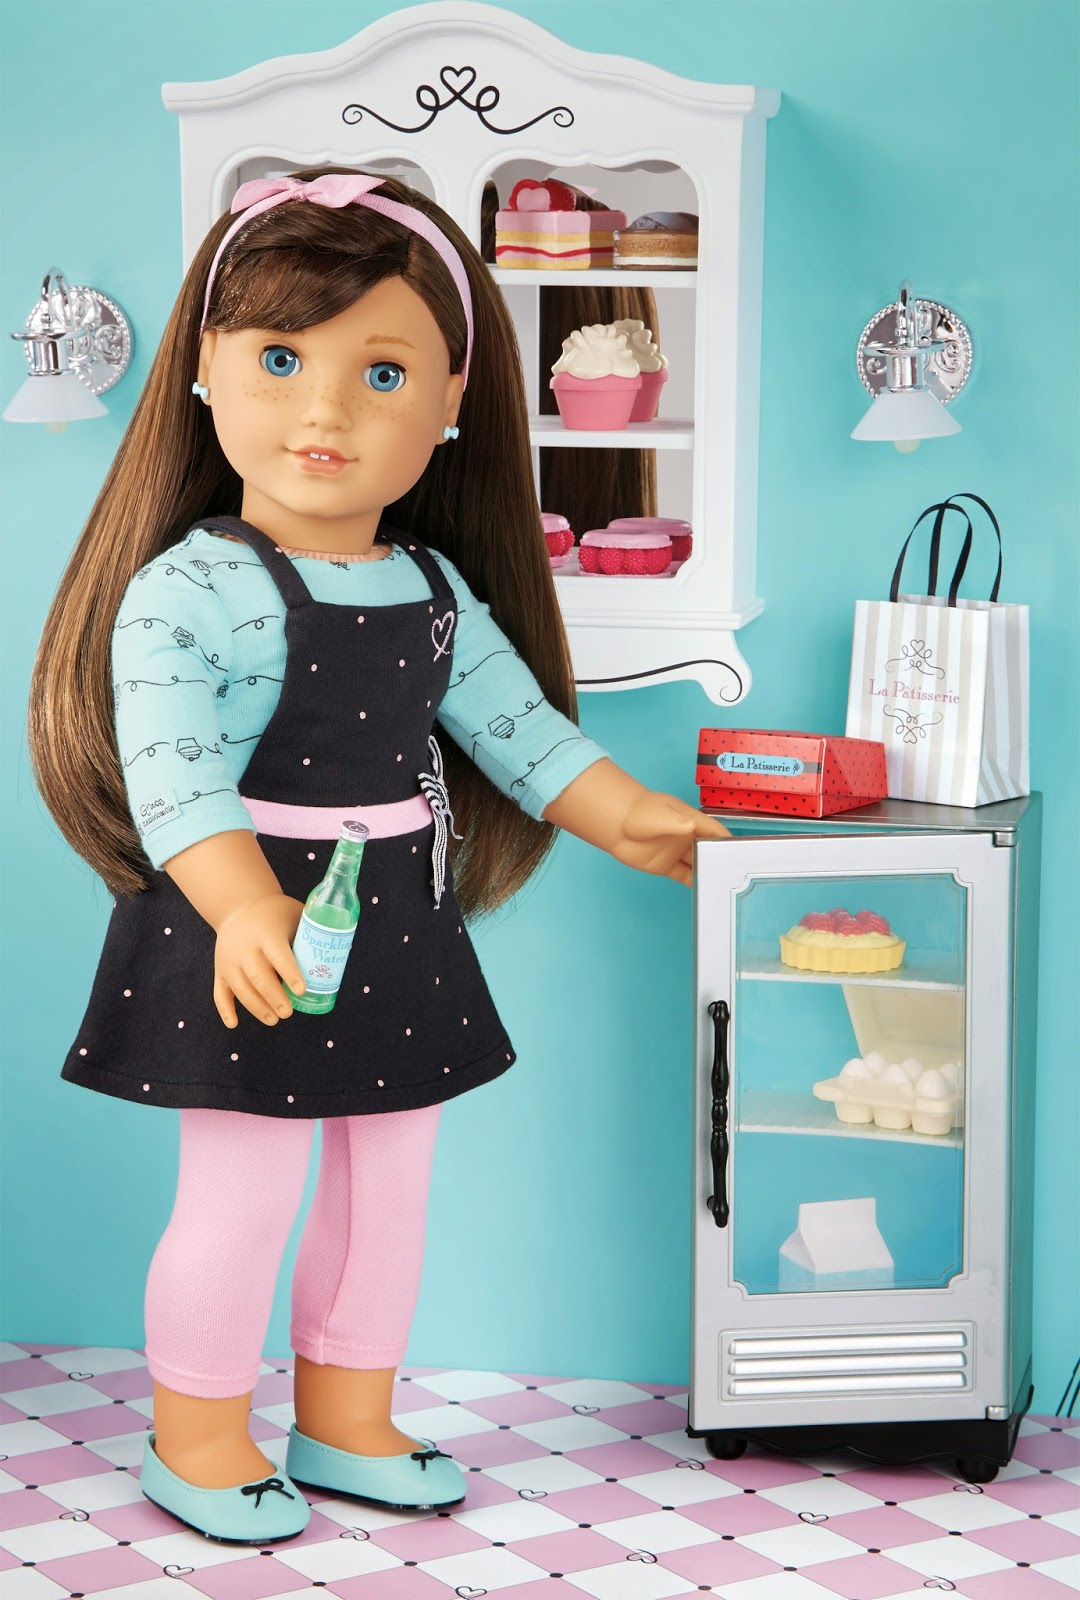 Grace Thomas doll and her bakery set